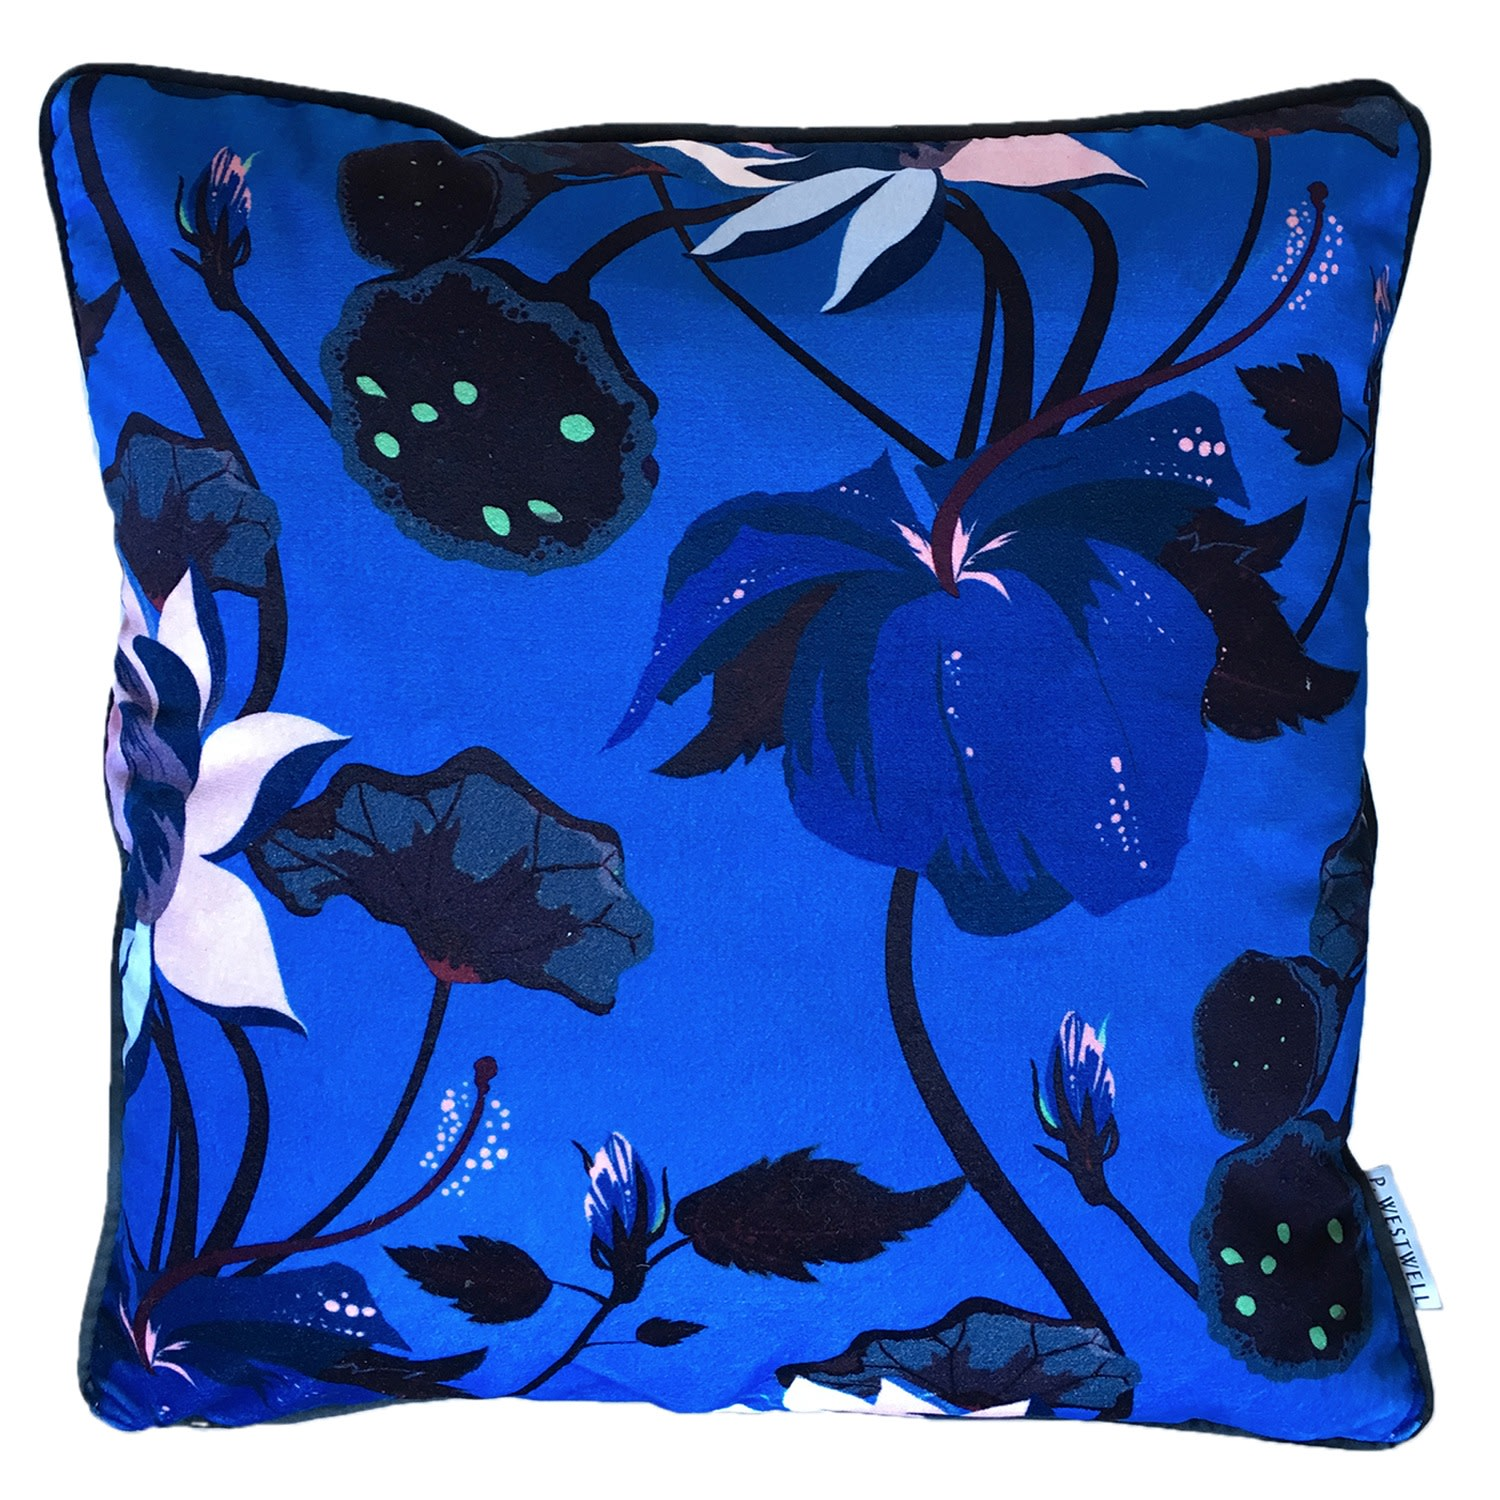 P.Westwell - Large Lobiscus Velvet Cushion in Lustrous Blue